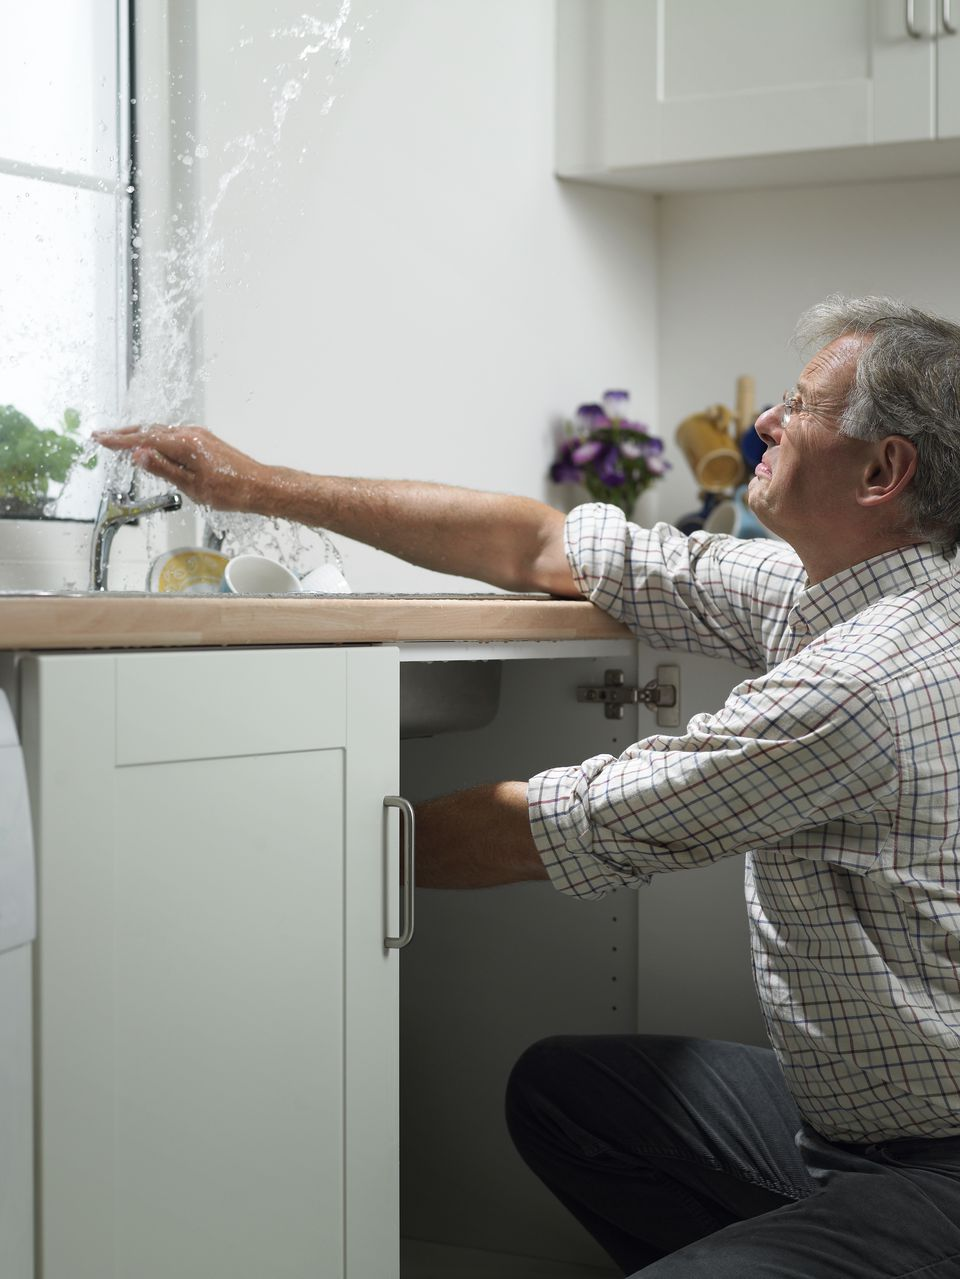 Man attempting to fix sink in kitchen